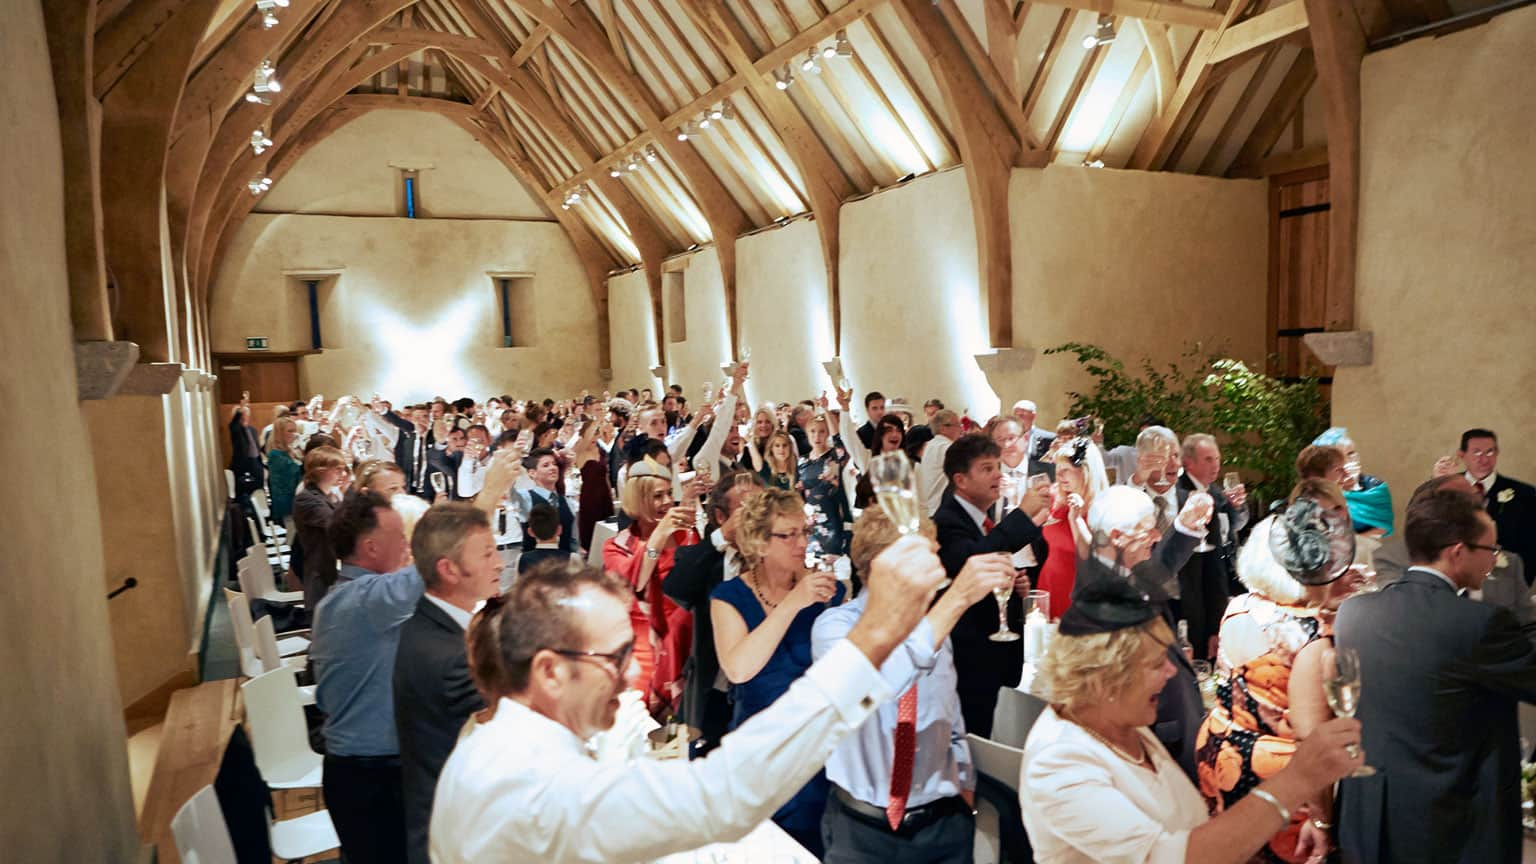 Wedding Drinks, The Great Barn Devon, Wedding Venue Devon, Devon Wedding Venue